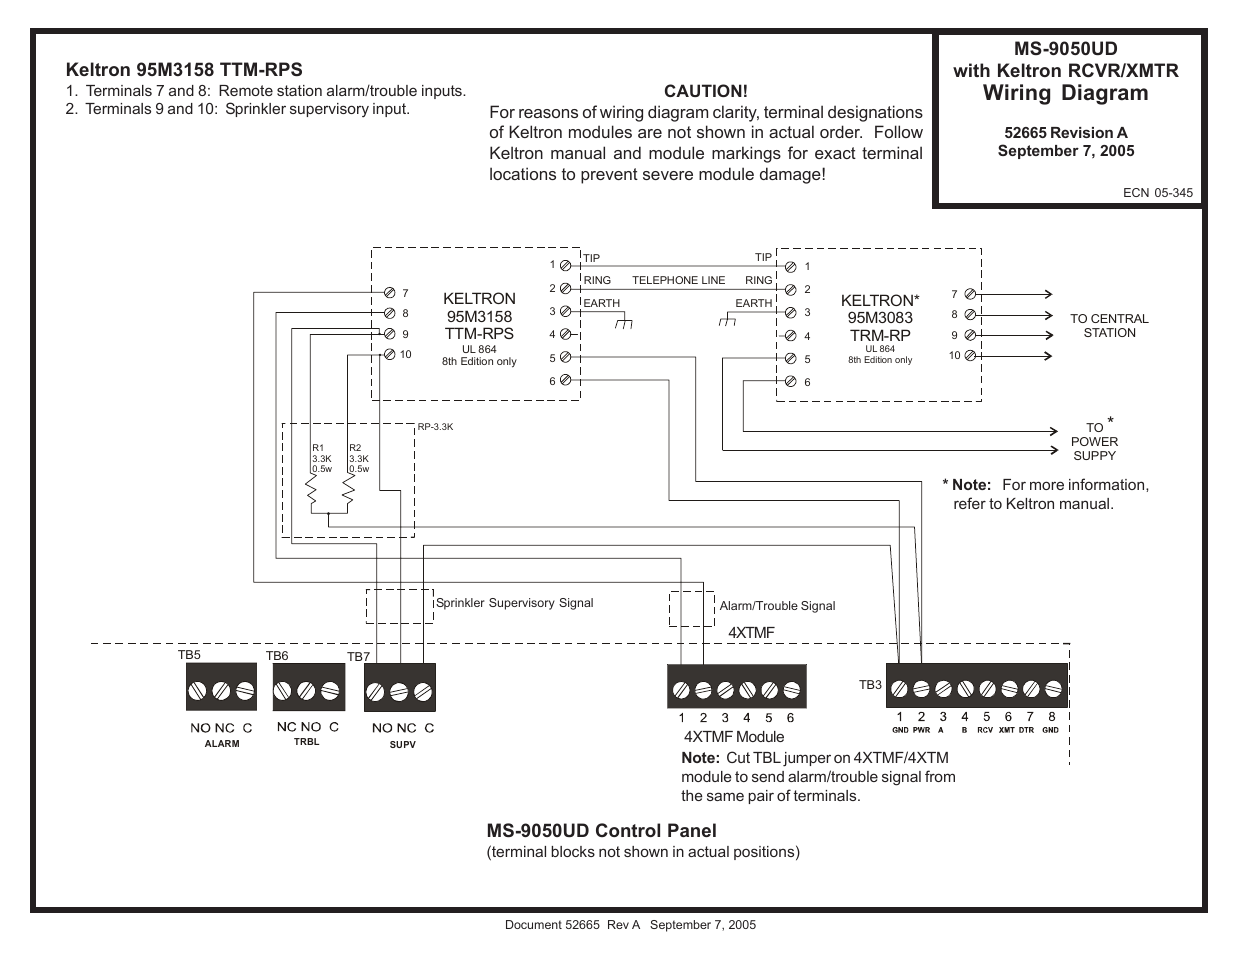 Fire Lite Ms Ud With Keltron Transmitter Receiver Wiring Diagram Page in addition Maxresdefault additionally Maxresdefault further Large further . on fire alarm control panel wiring diagram